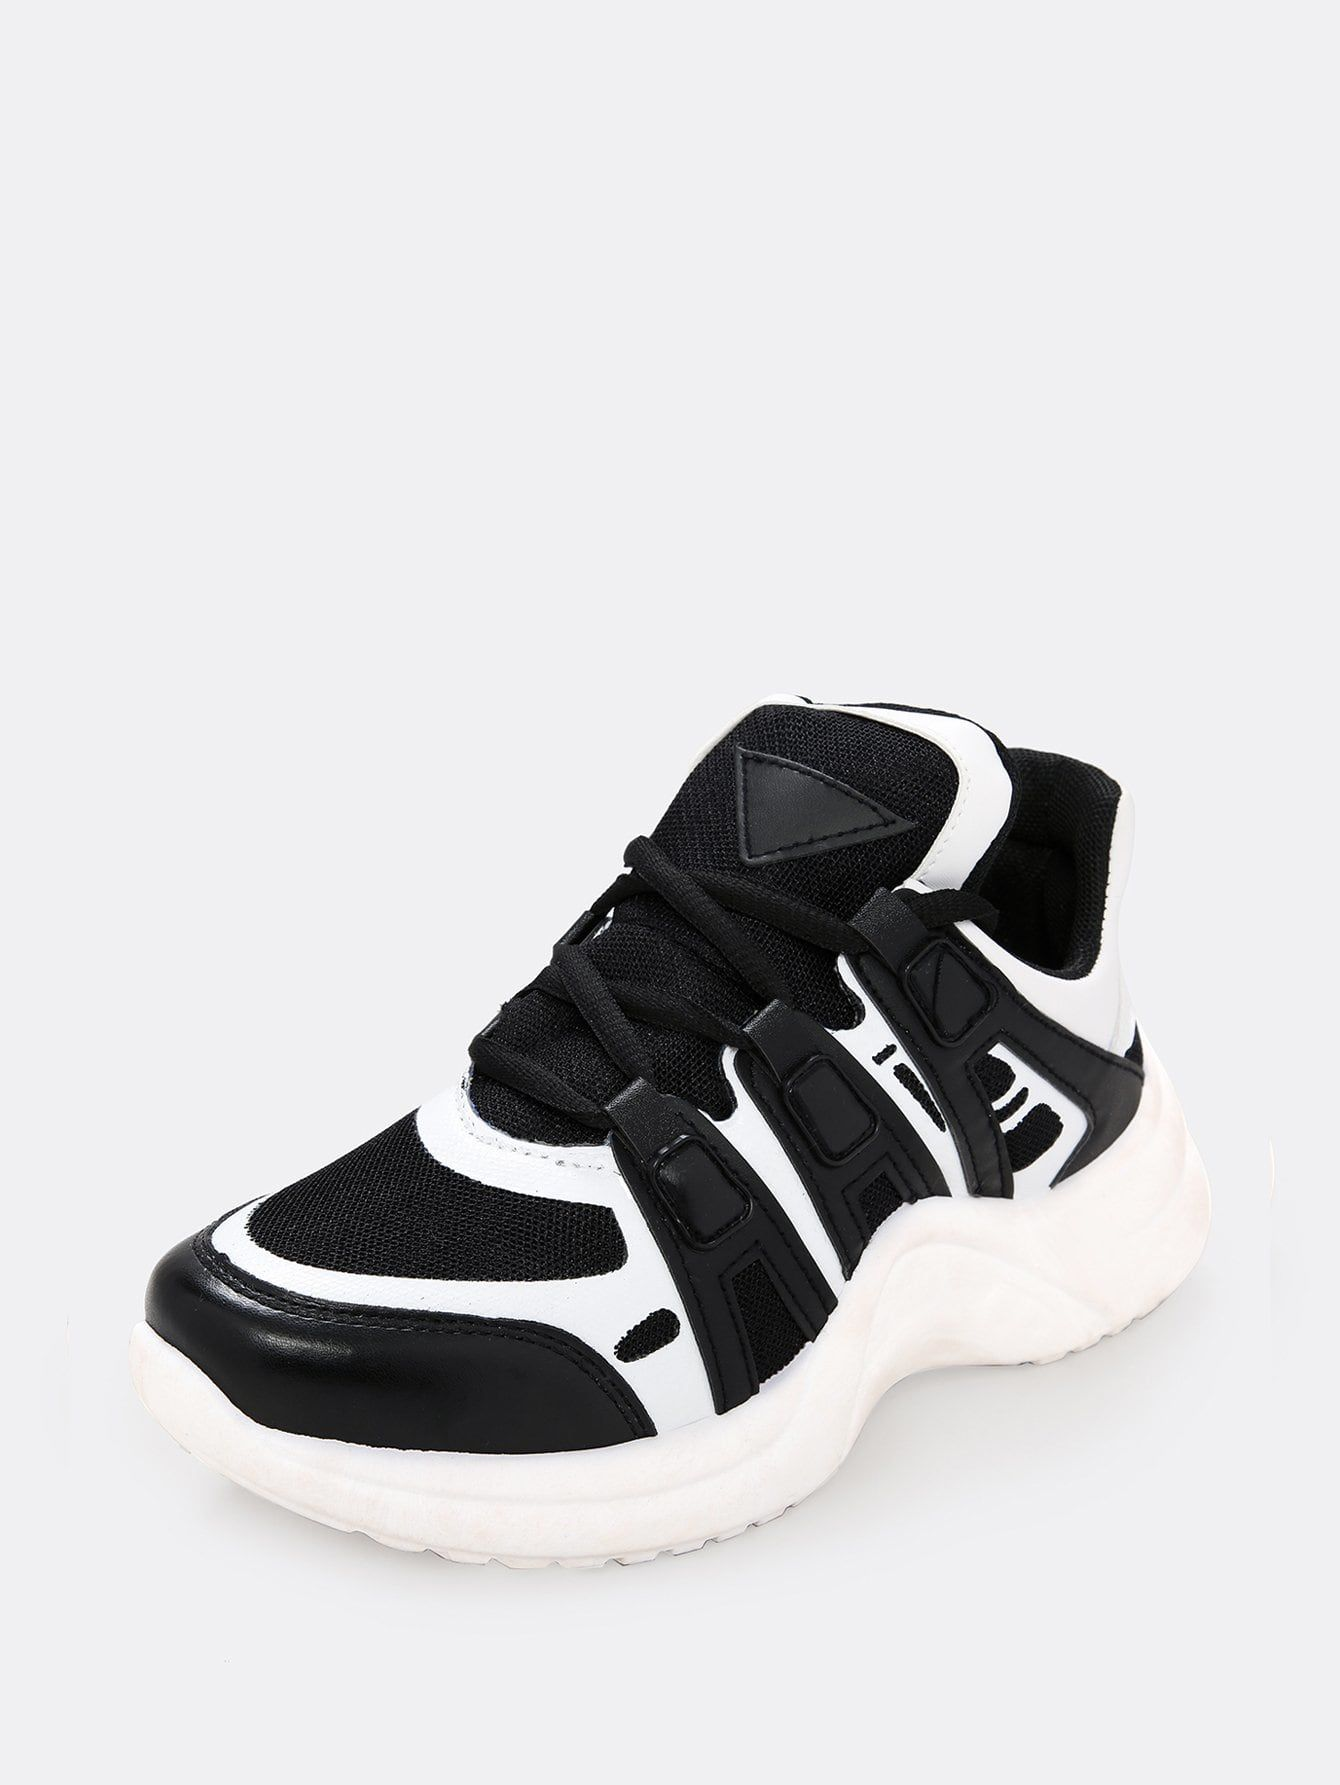 dccd65926f Sporty Round Toe Letter White Letter Print Lug Sole Wedge Sneakers | Shoe | Wedge  sneakers, Sneakers, White letters